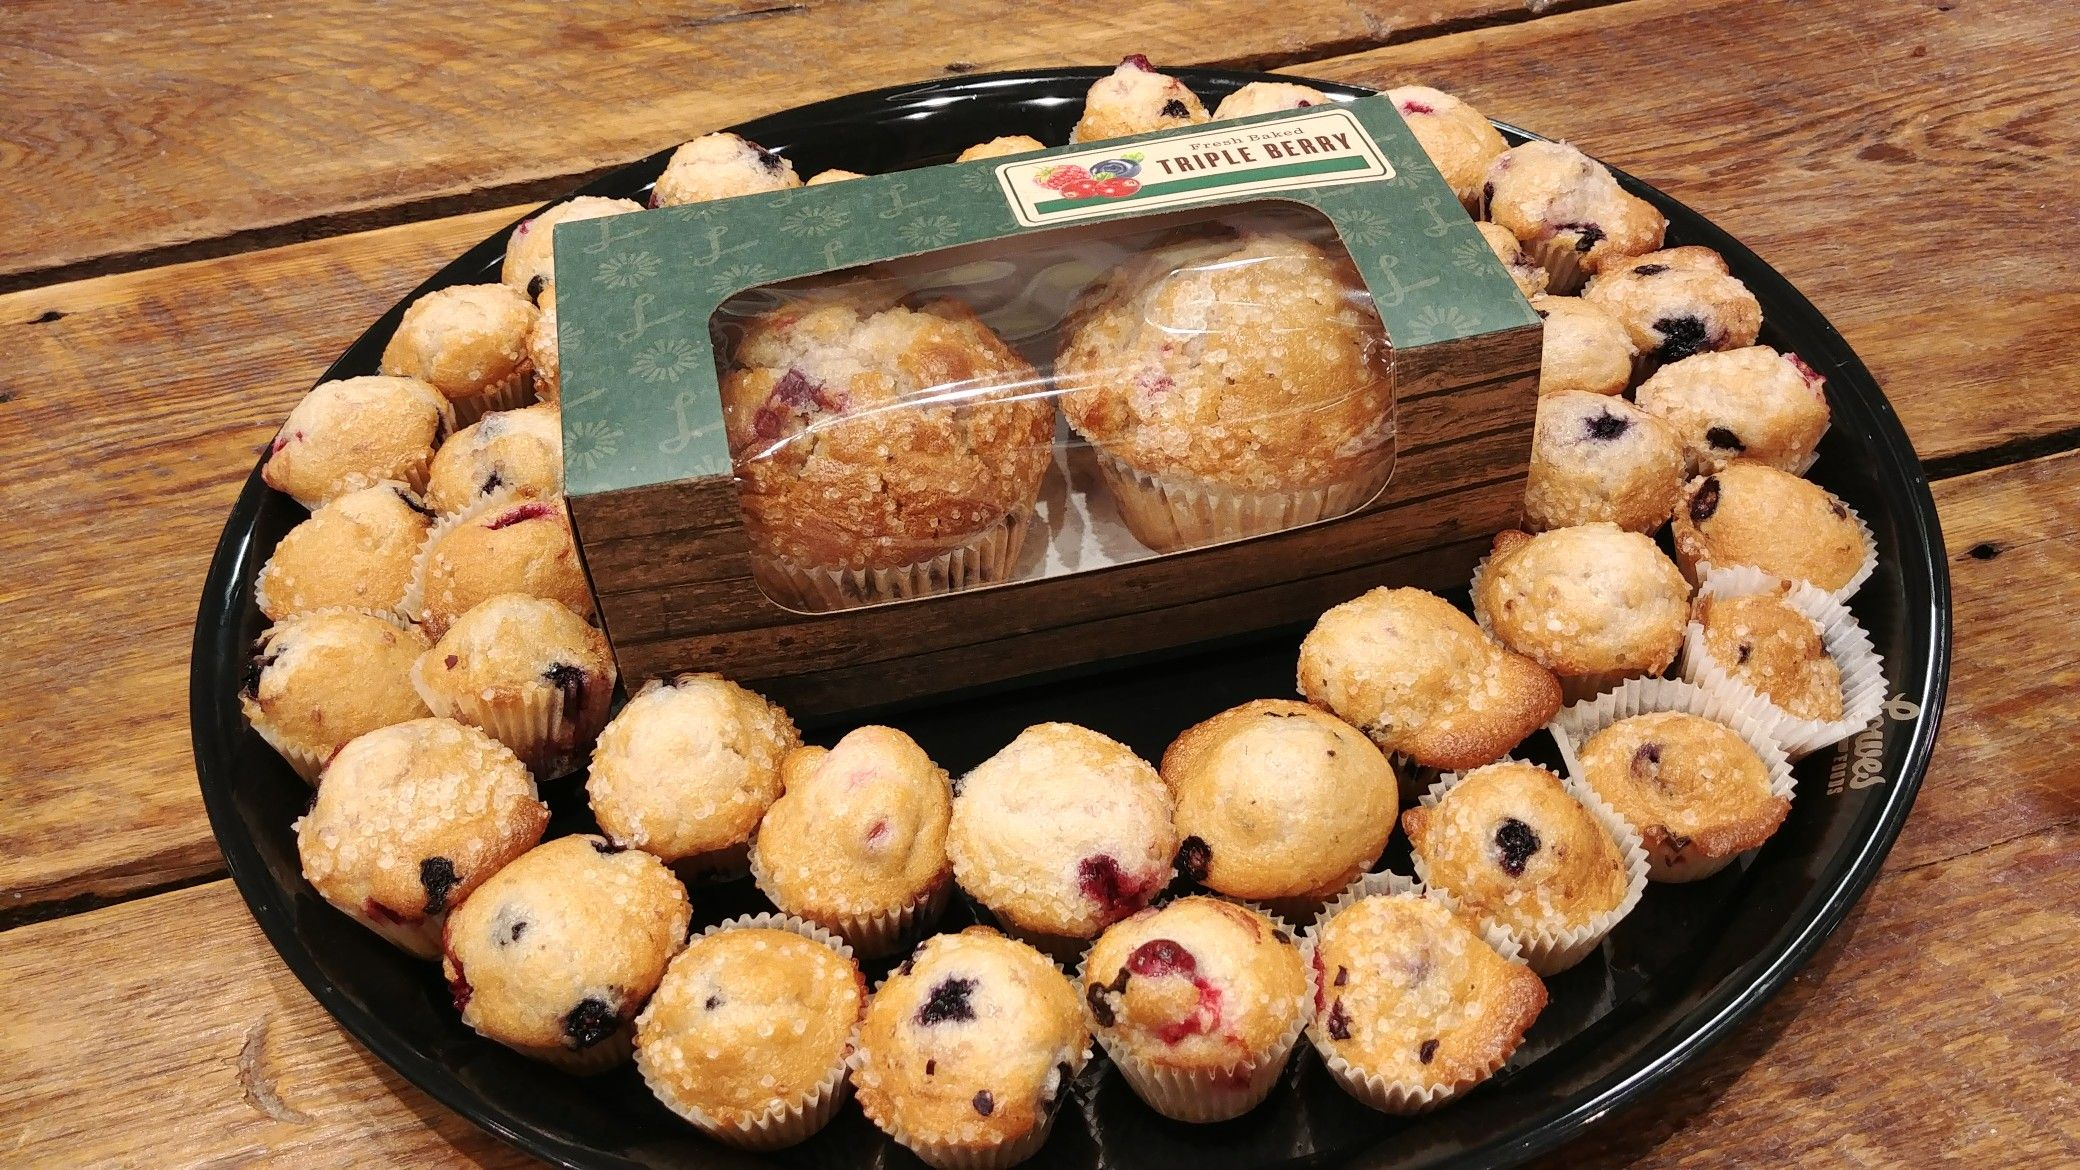 Who knew you can make mini muffins just like our large